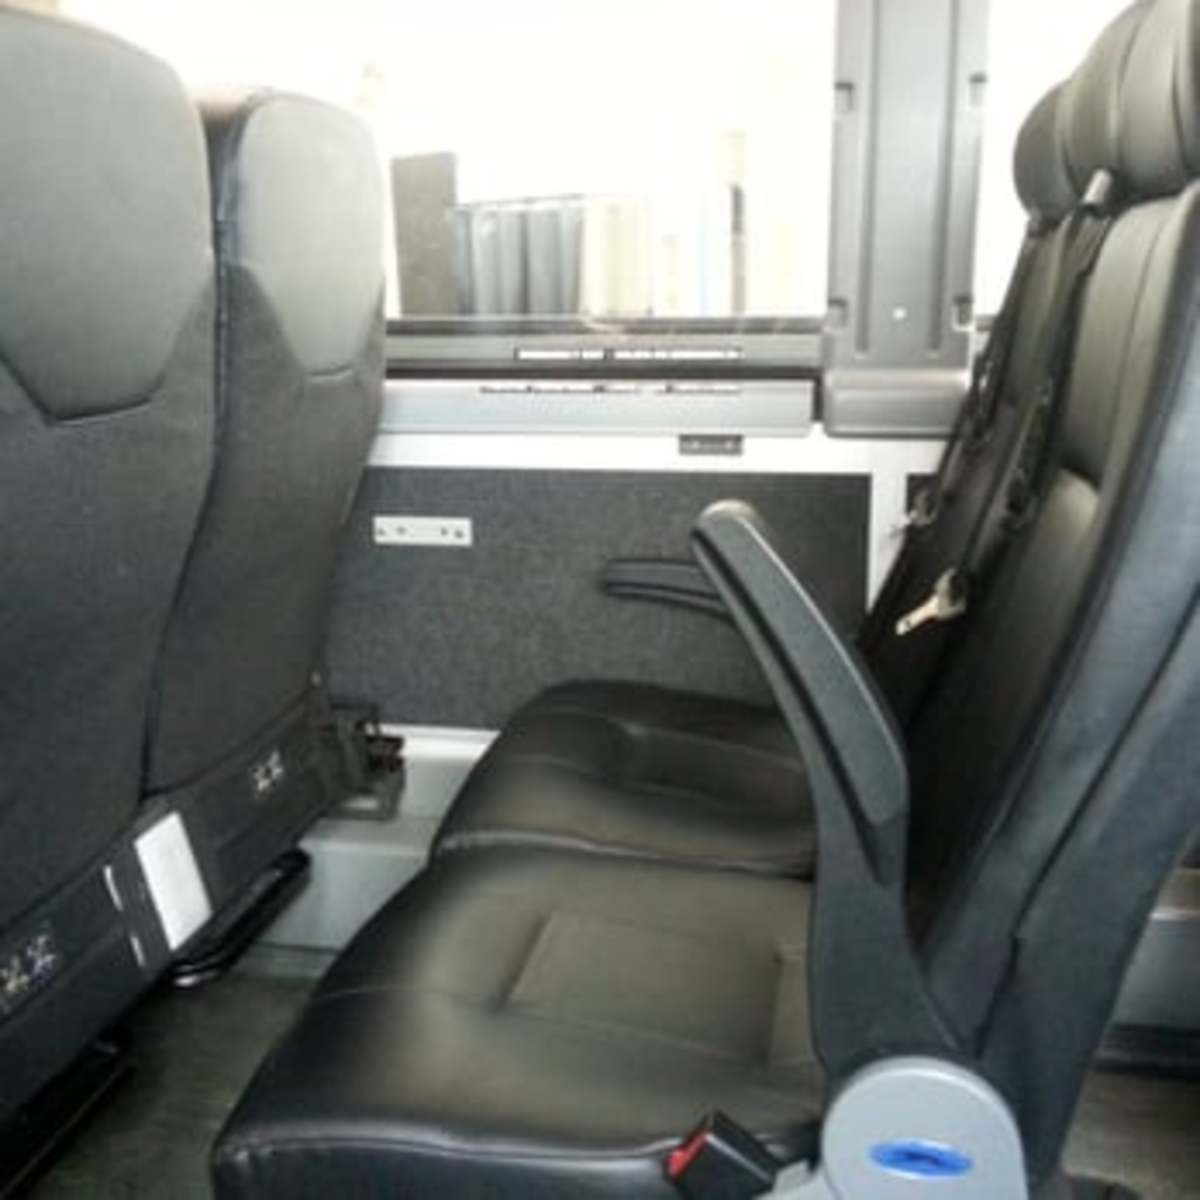 power-outlets-on-the-greyhound-bus